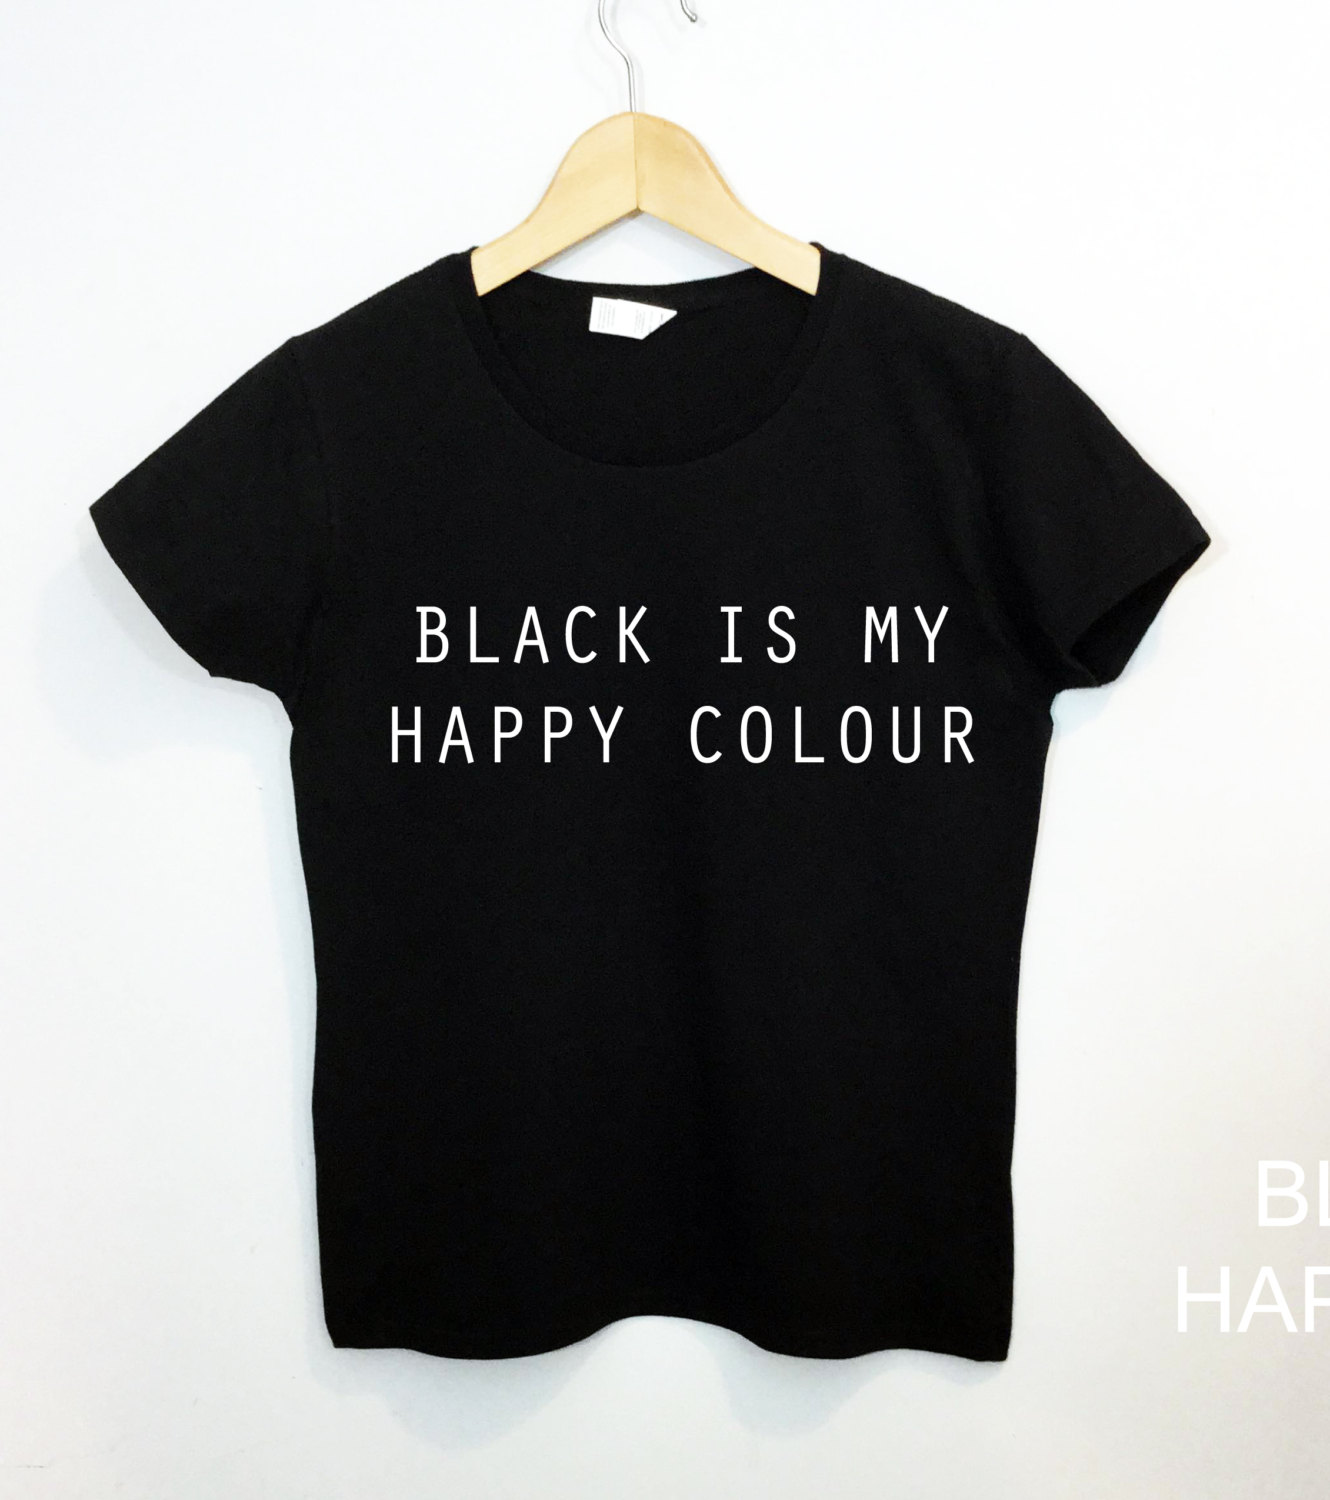 T shirt black is my happy color - Black Is My Happy Color Tshirt Tumblr Blogger Instagram Shirt